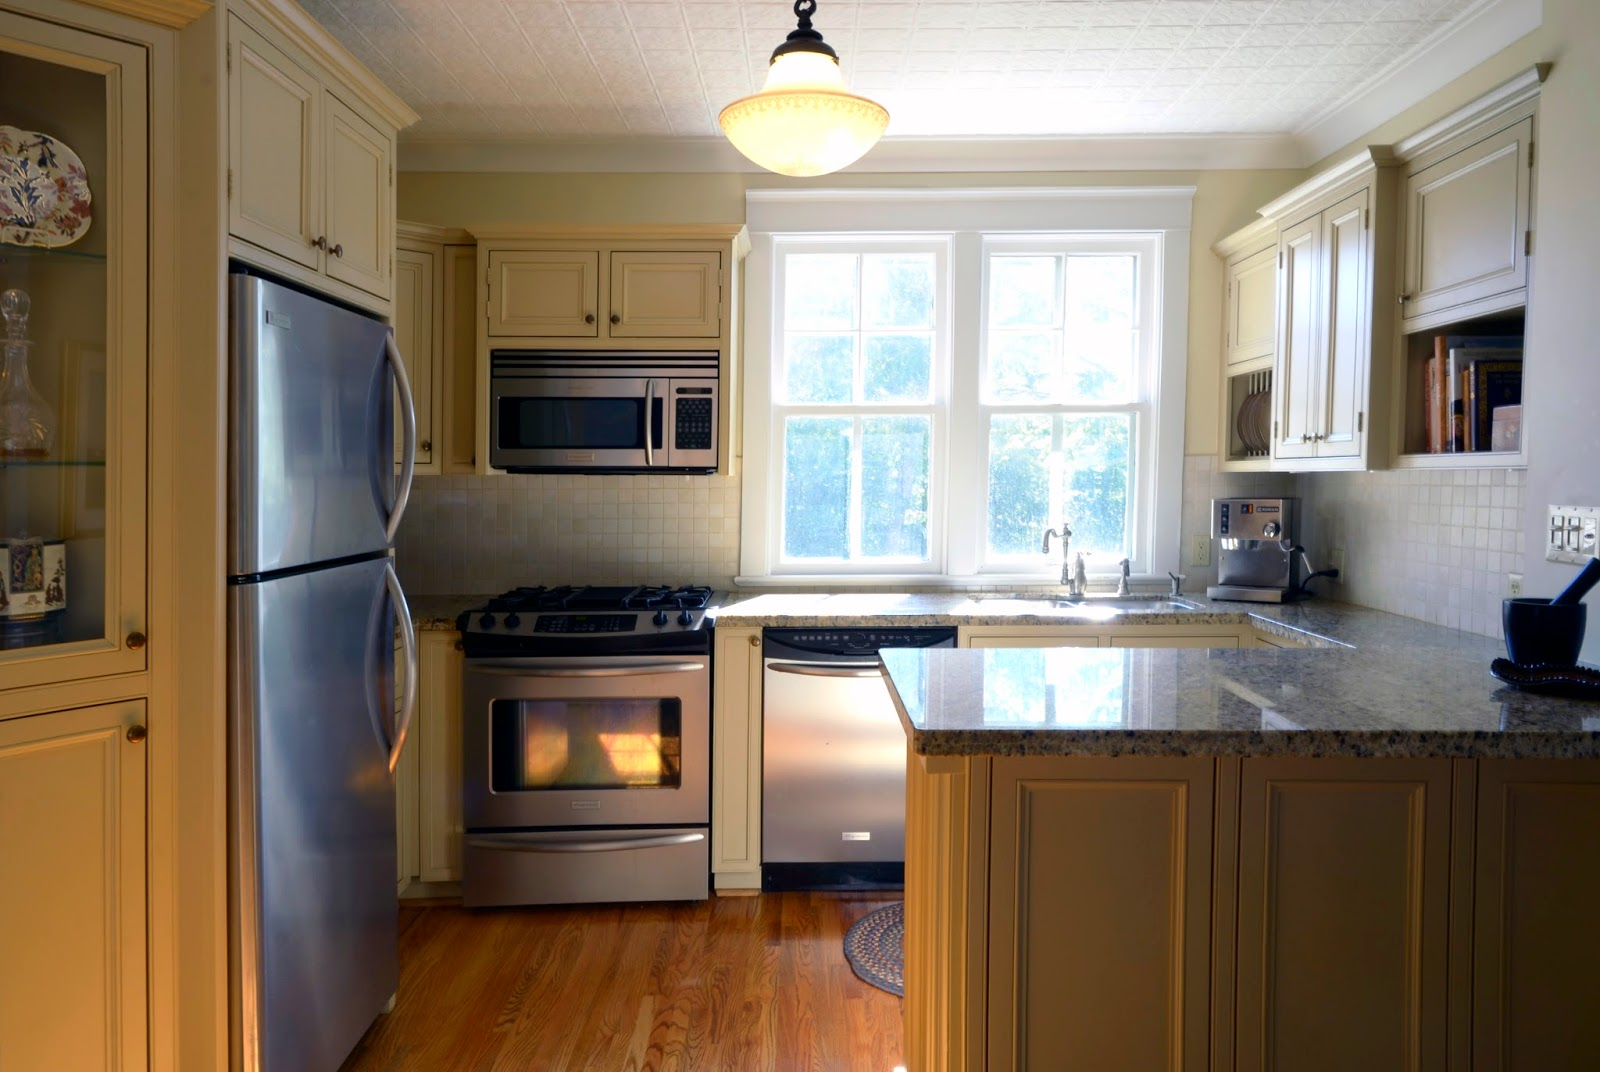 Matching stainless steel appliances include fridge, dishwasher